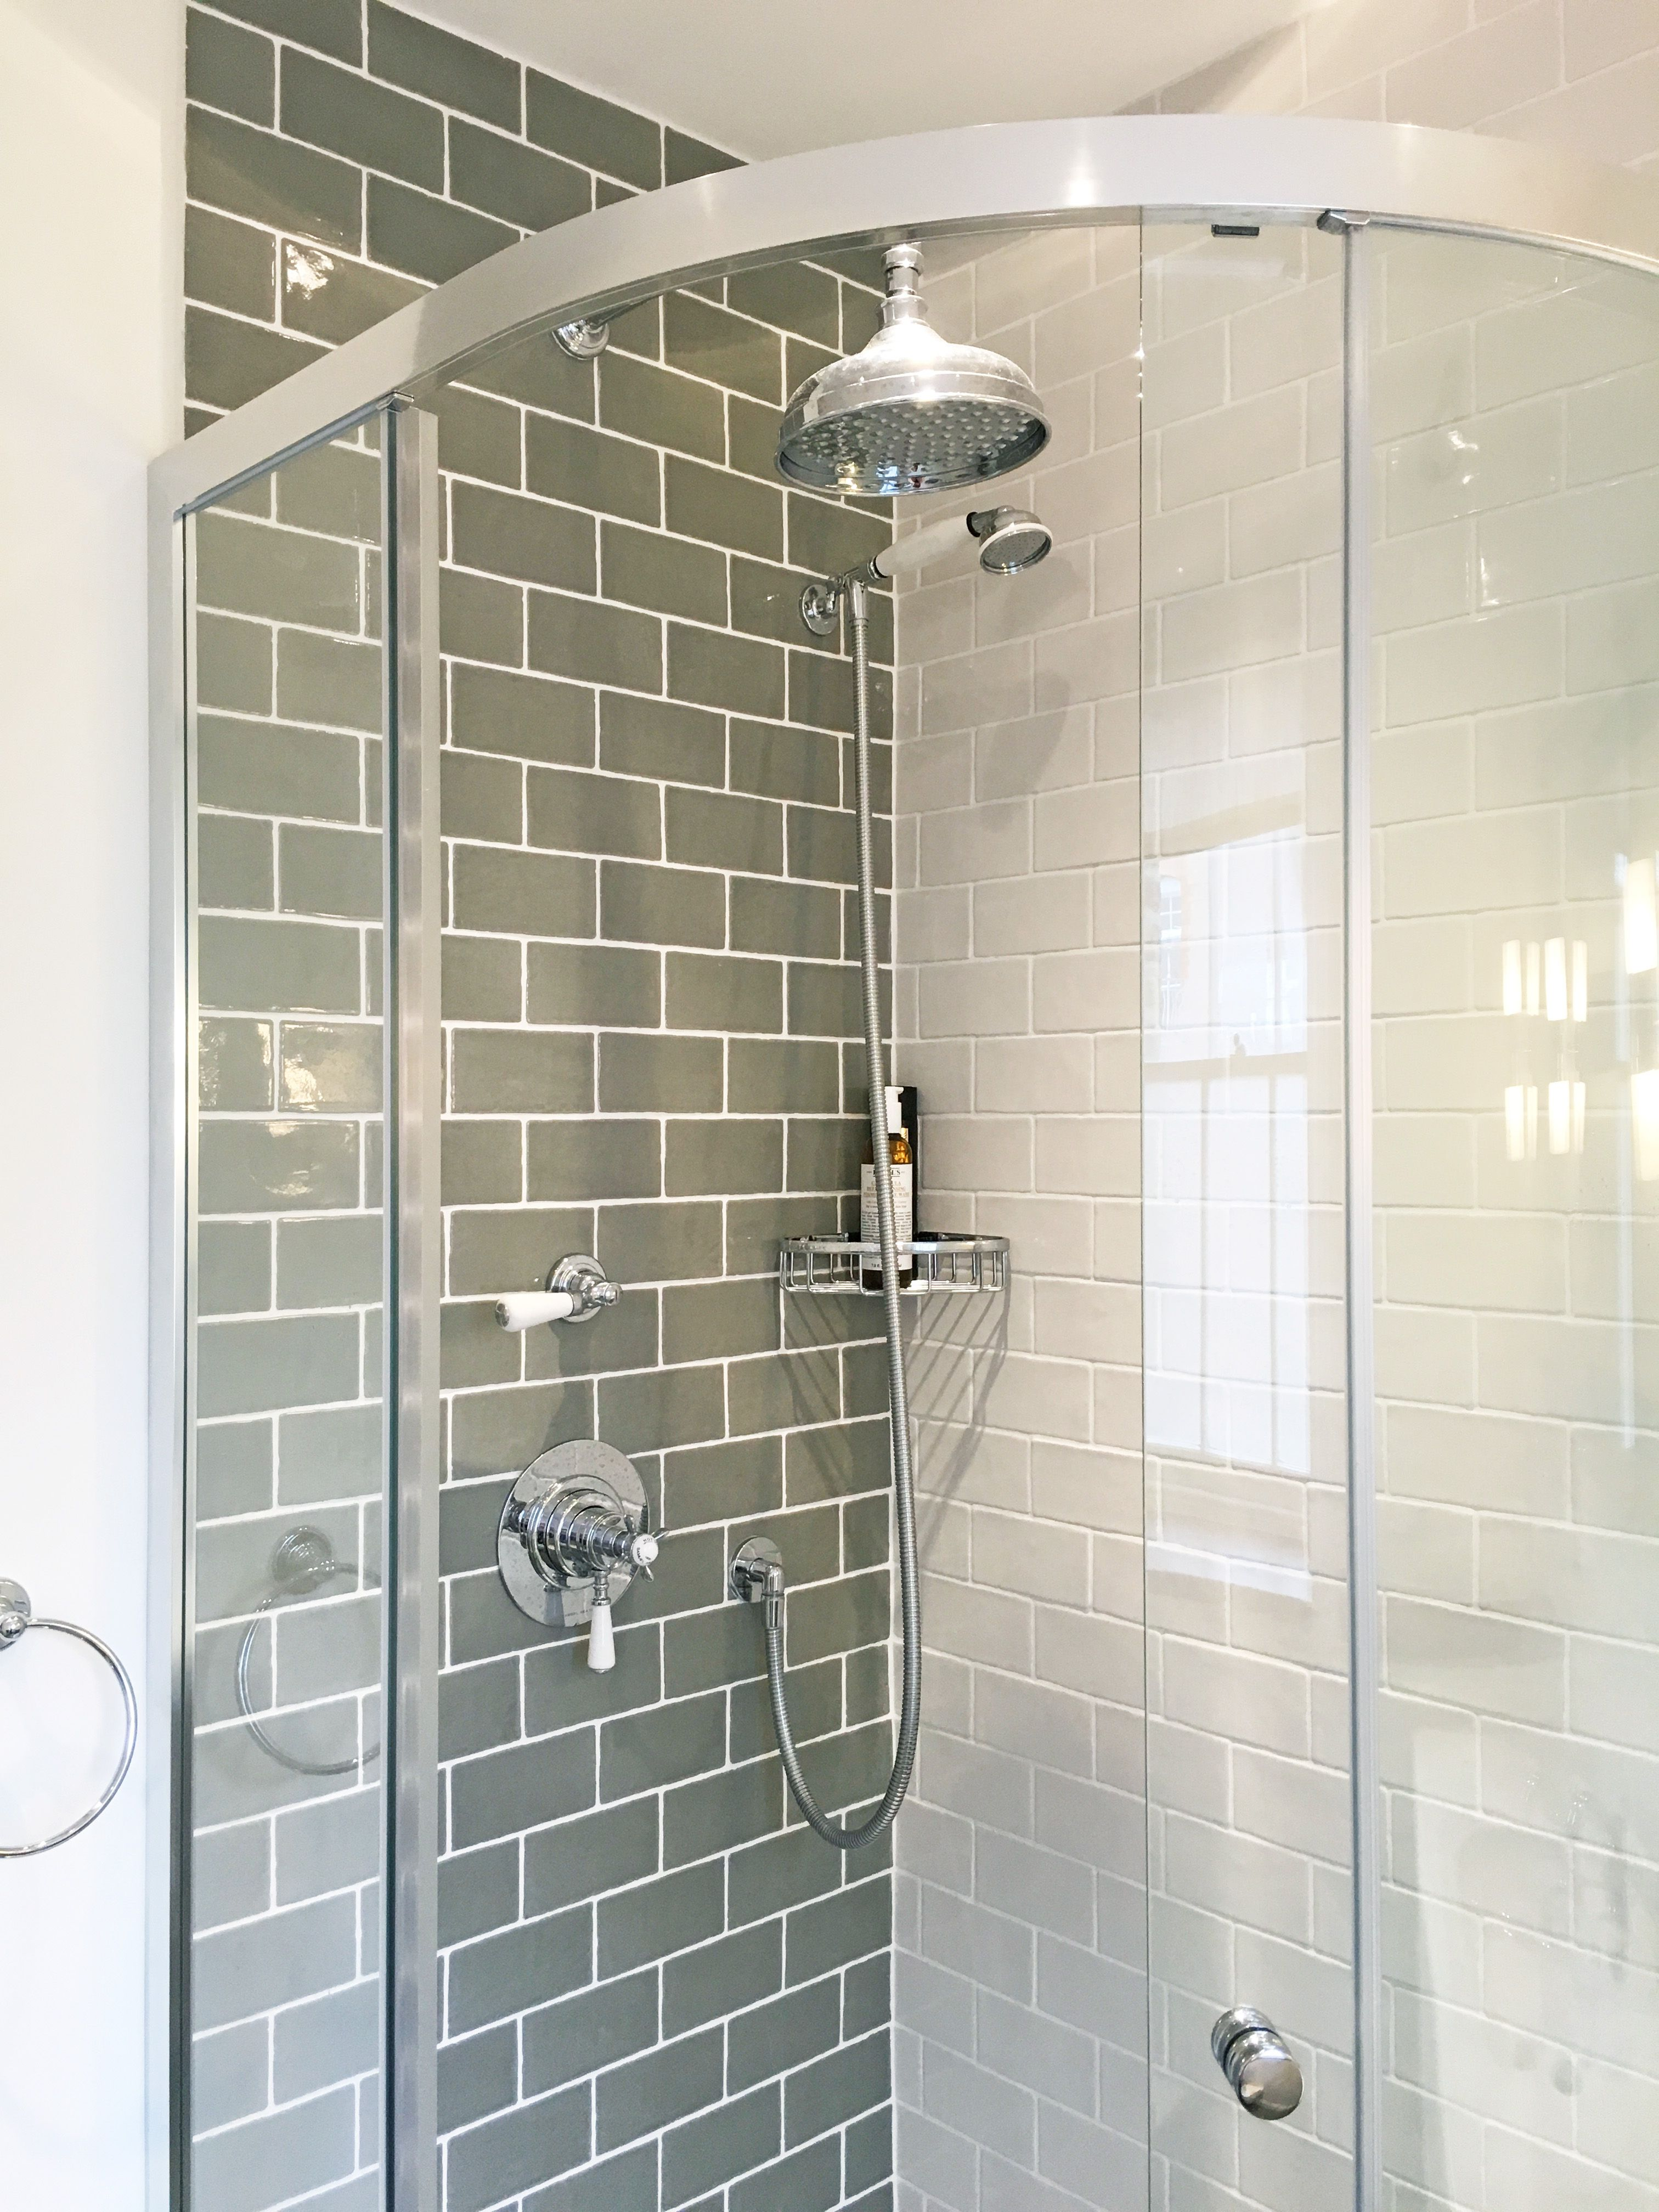 Apm Finished Shower Enclosure With Lovely Fired Earth Metro Tiles